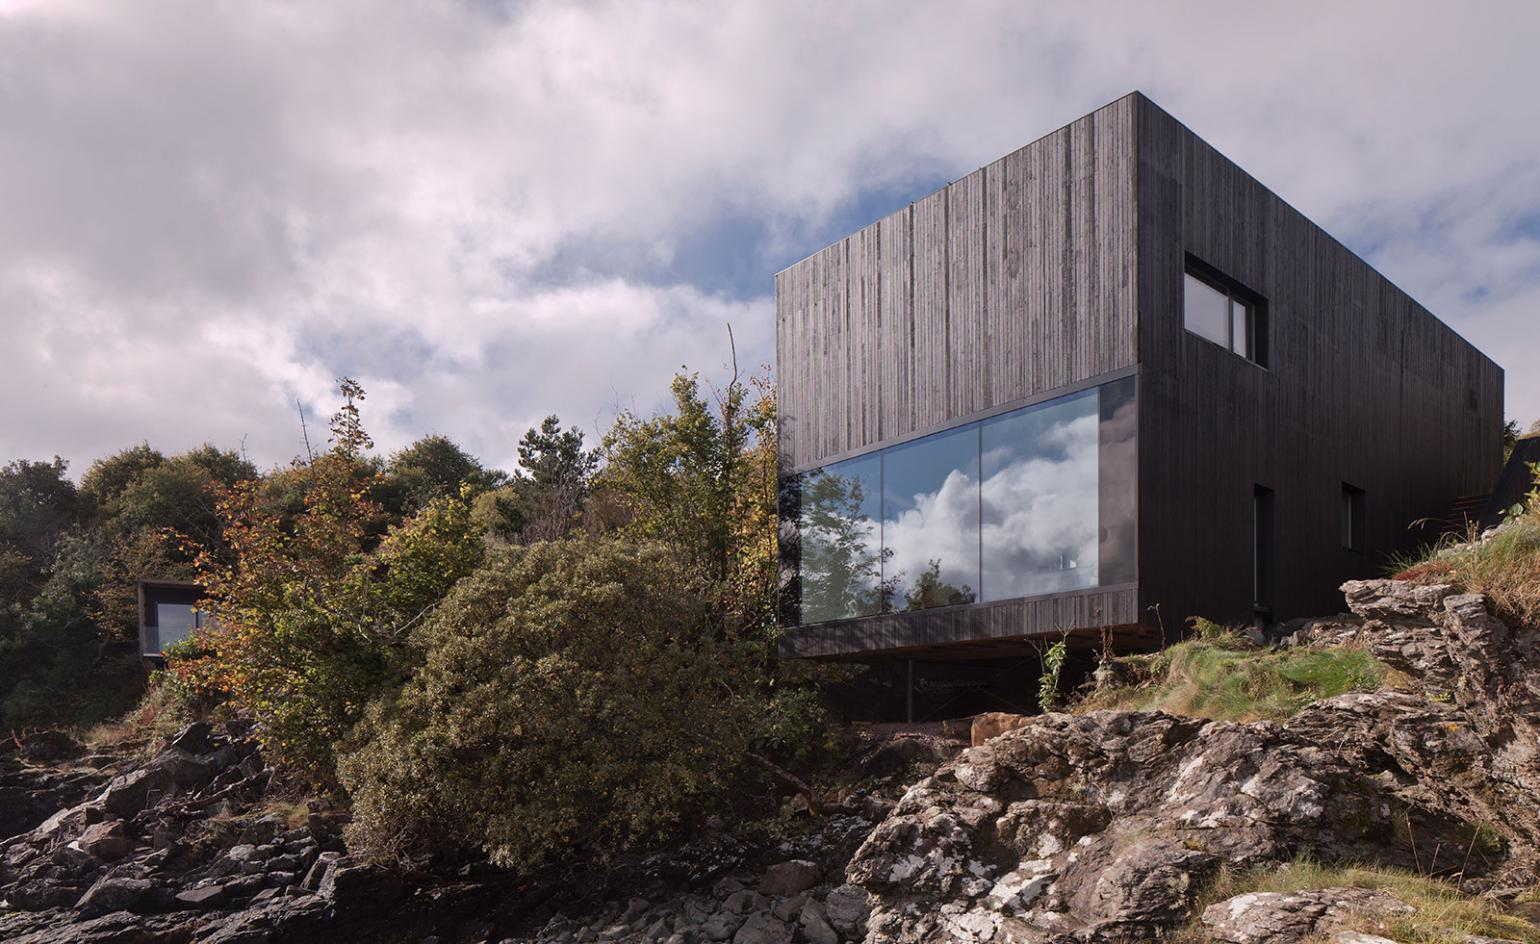 Highland modern: Dualchas Architects shortlisted for RIBA House of the Year